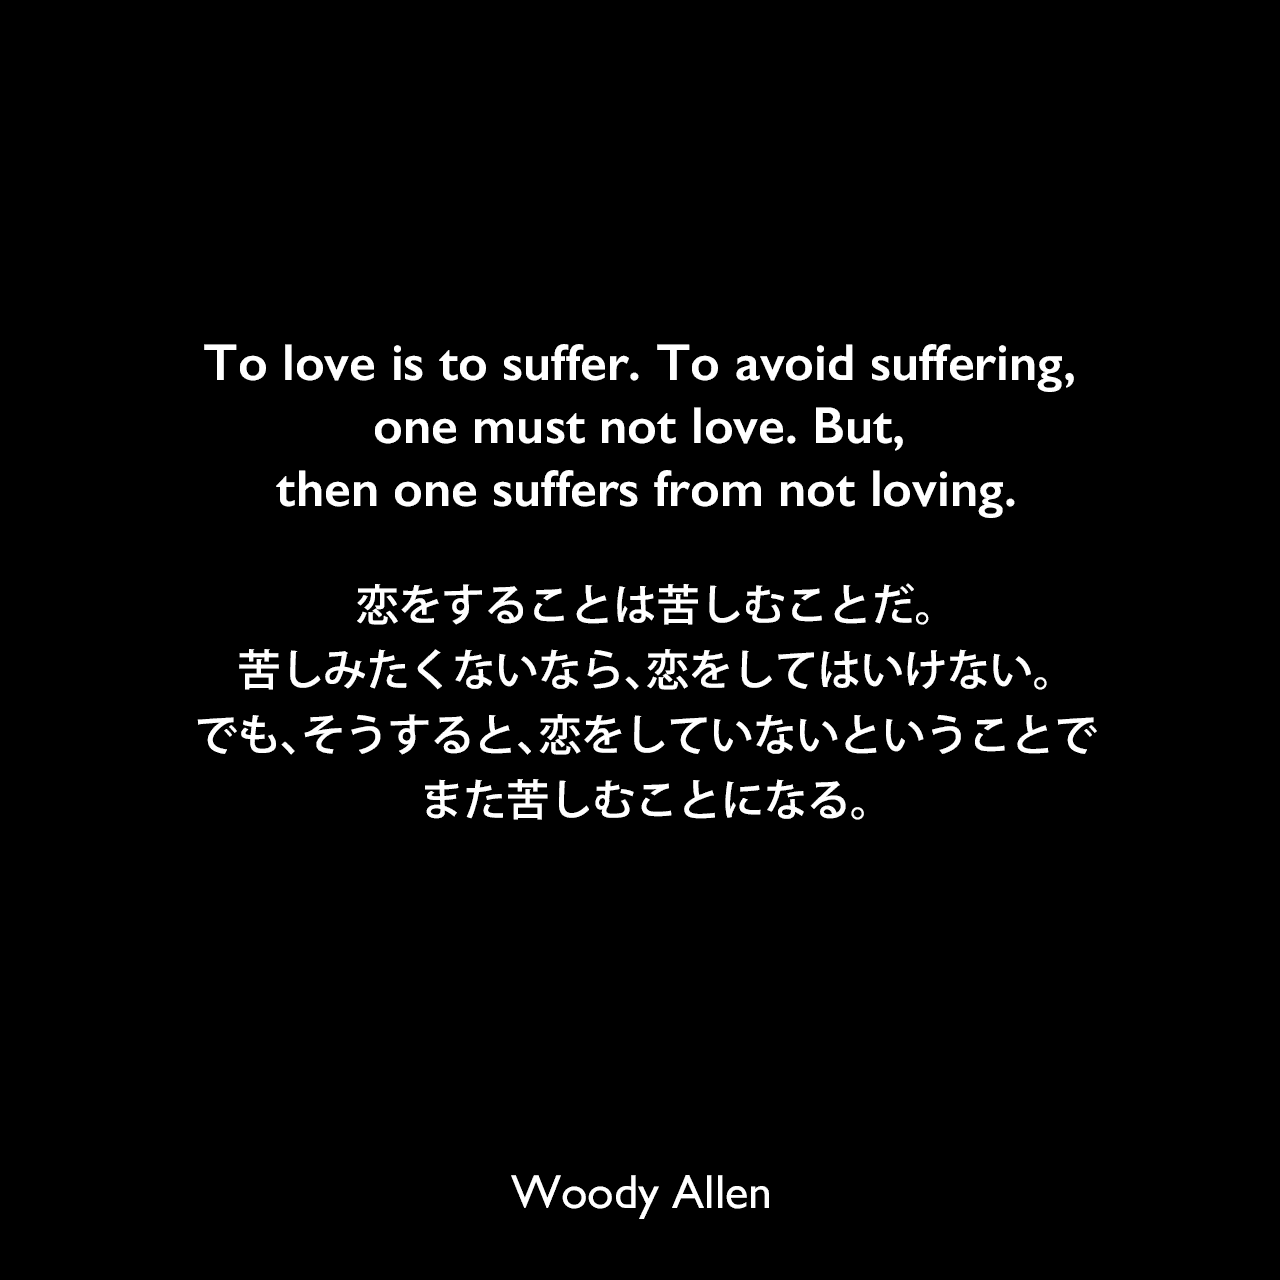 To love is to suffer. To avoid suffering, one must not love. But, then one suffers from not loving.恋をすることは苦しむことだ。苦しみたくないなら、恋をしてはいけない。でも、そうすると、恋をしていないということでまた苦しむことになる。Woody Allen